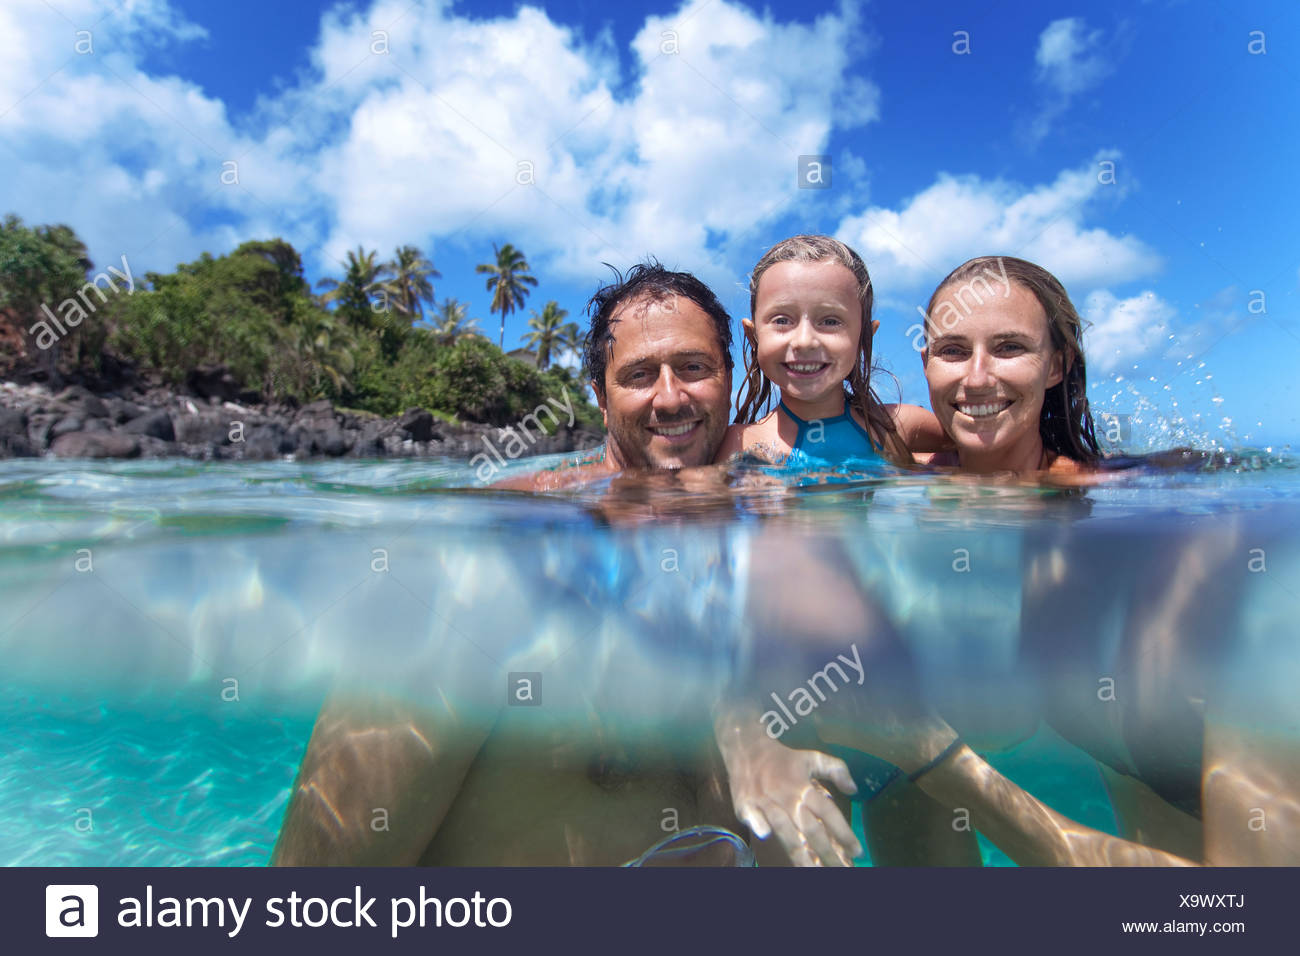 A split level view of a young family in the water at waimea Bay. - Stock Image